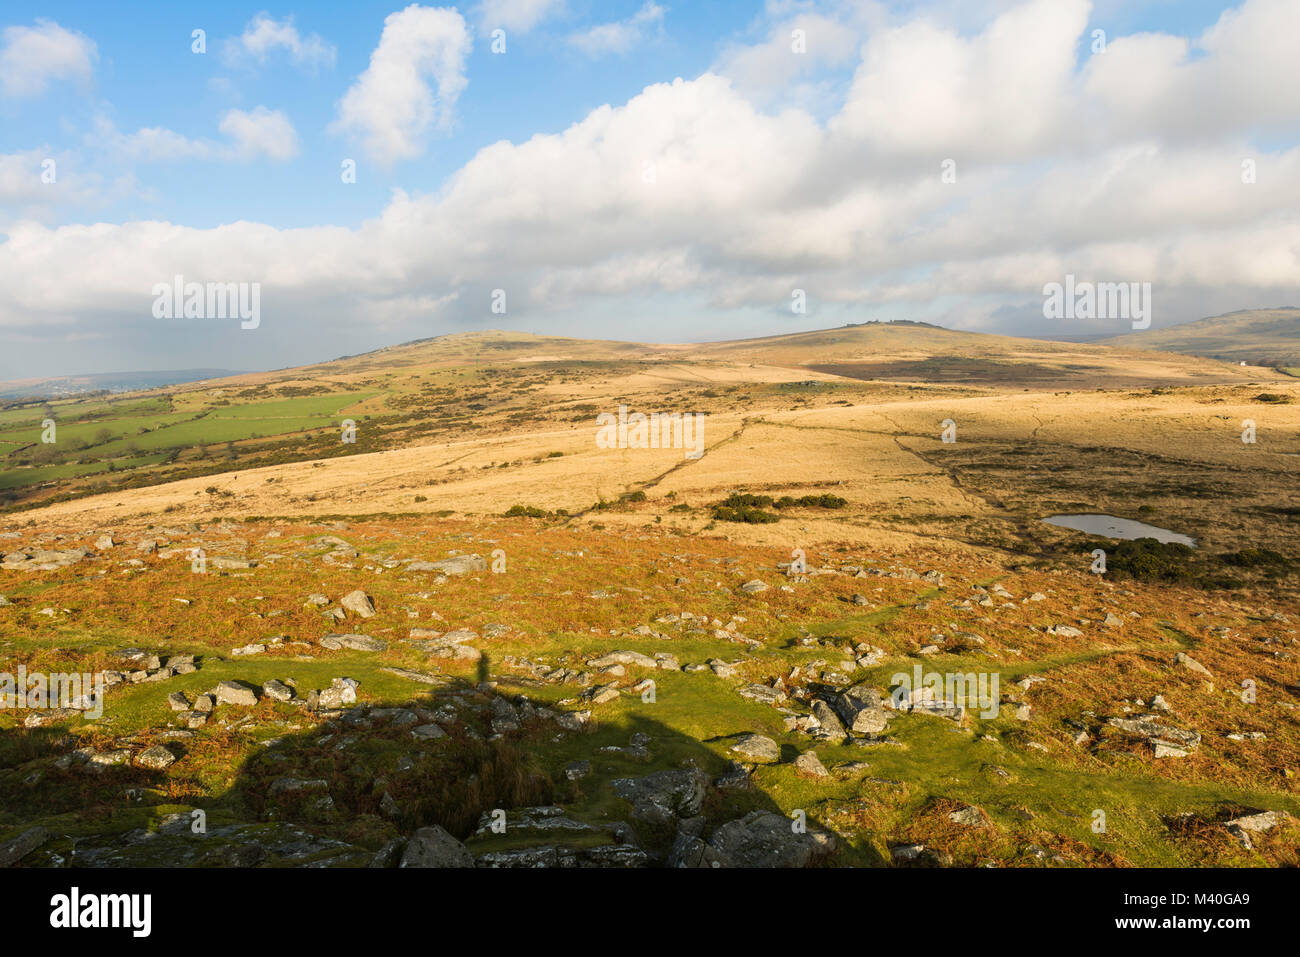 Moorland landscape view from the top of Pew Tor, Dartmoor National Park, Devon, UK. - Stock Image